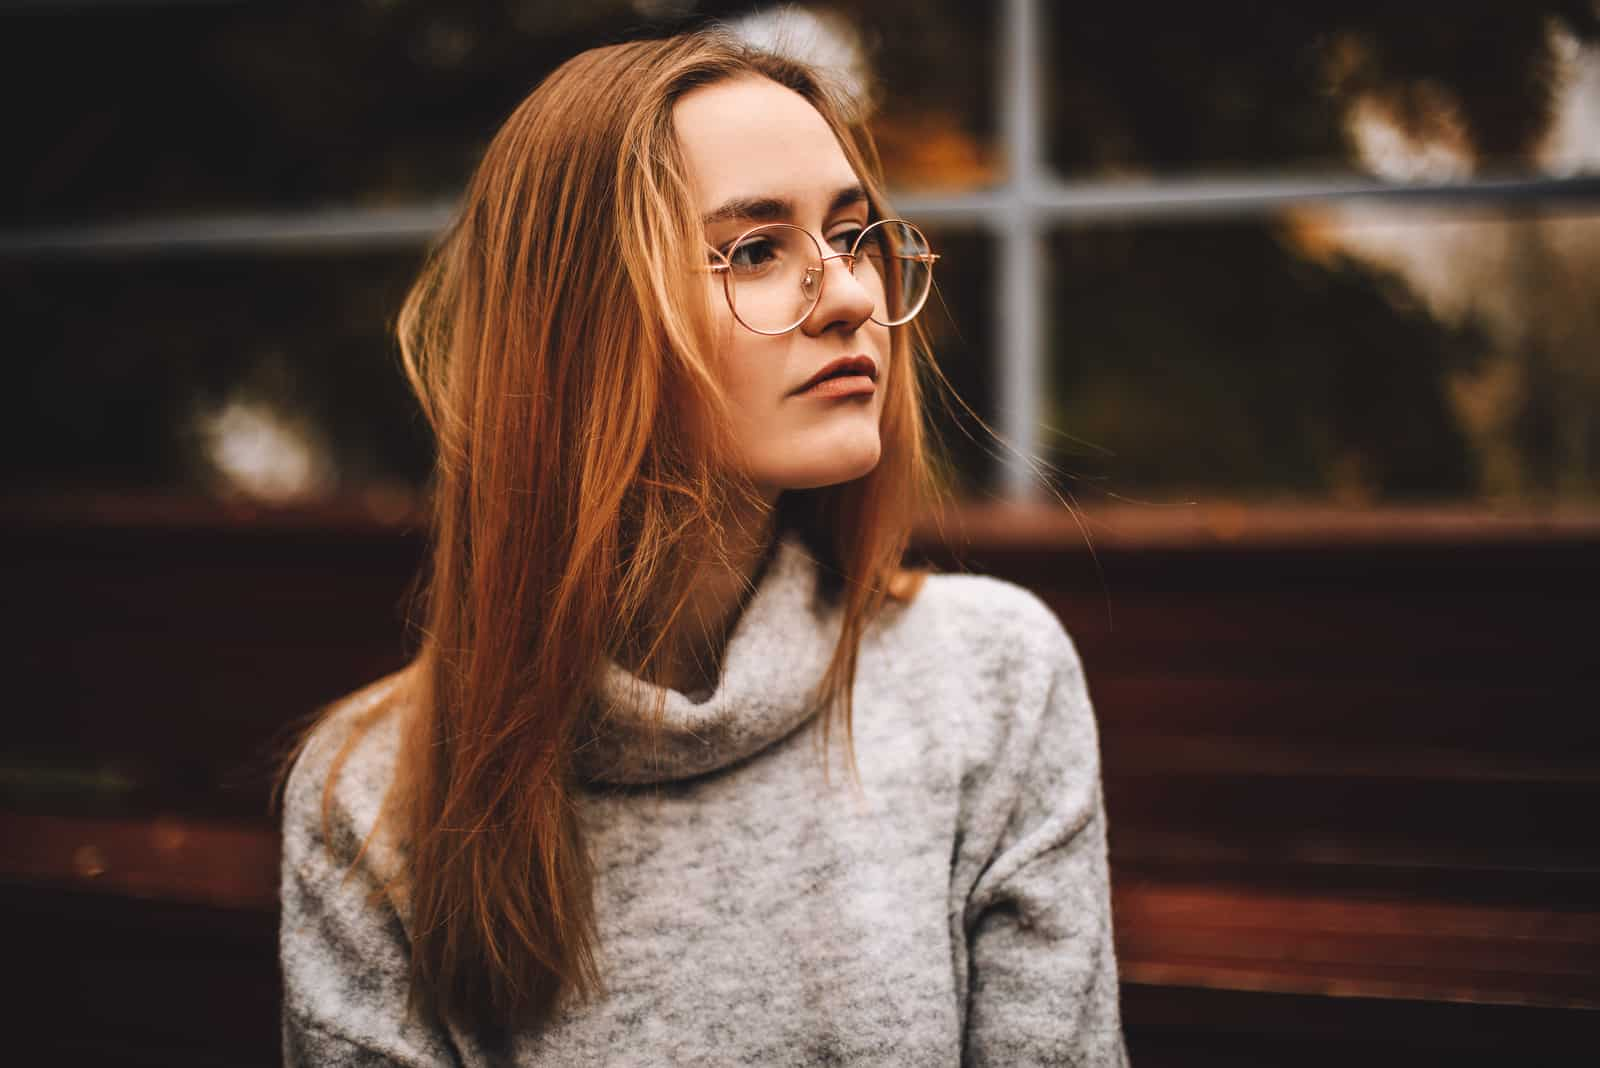 Woman wear warm grey knitted sweater and glasses